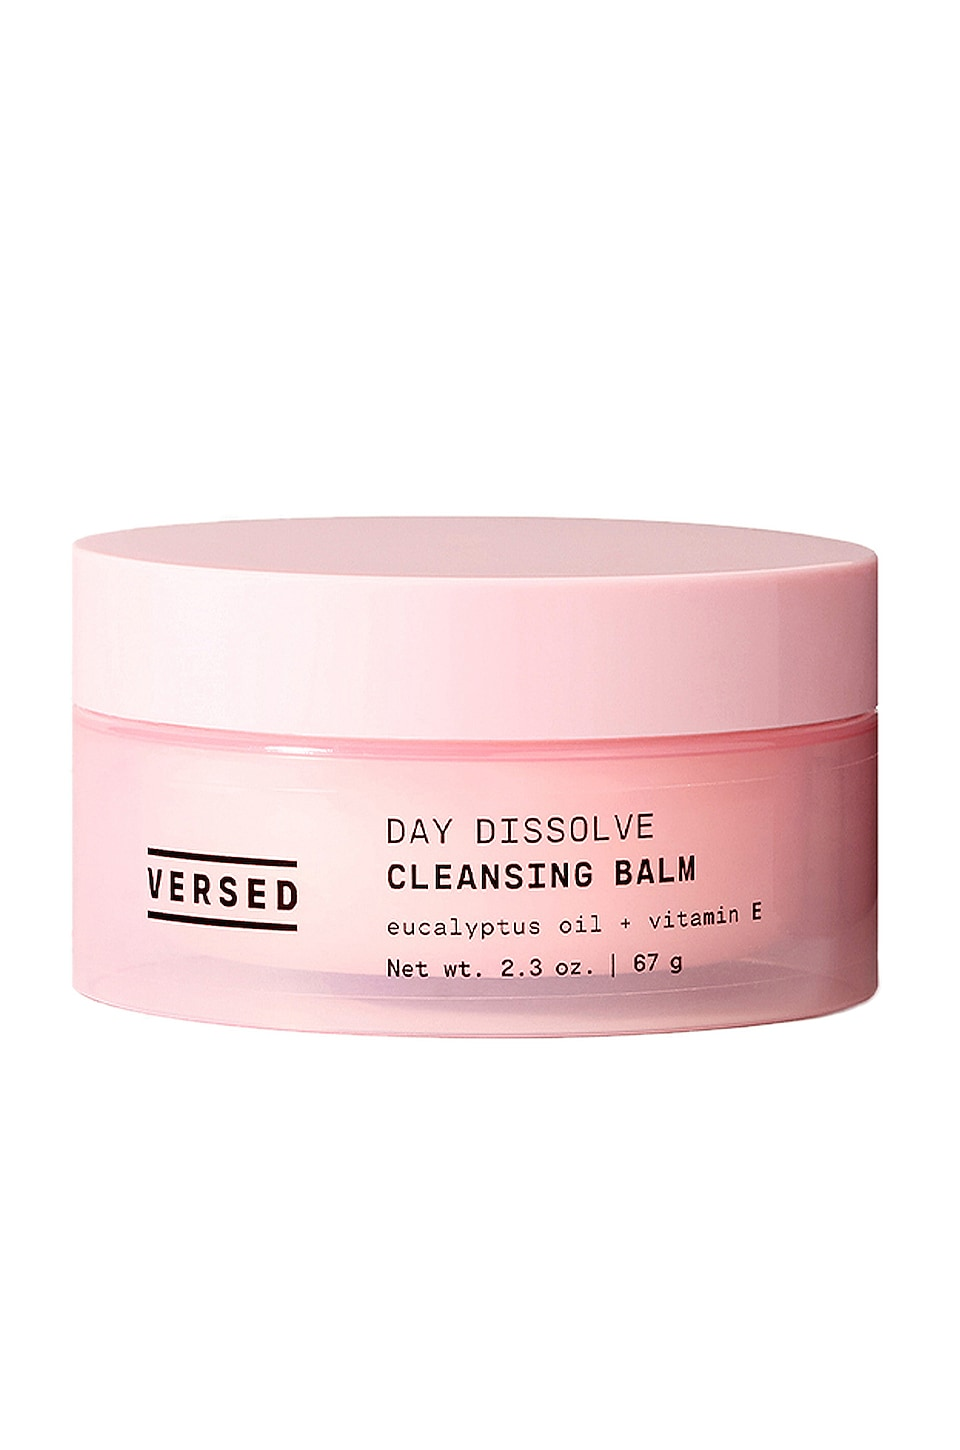 VERSED Day Dissolve Cleansing Balm